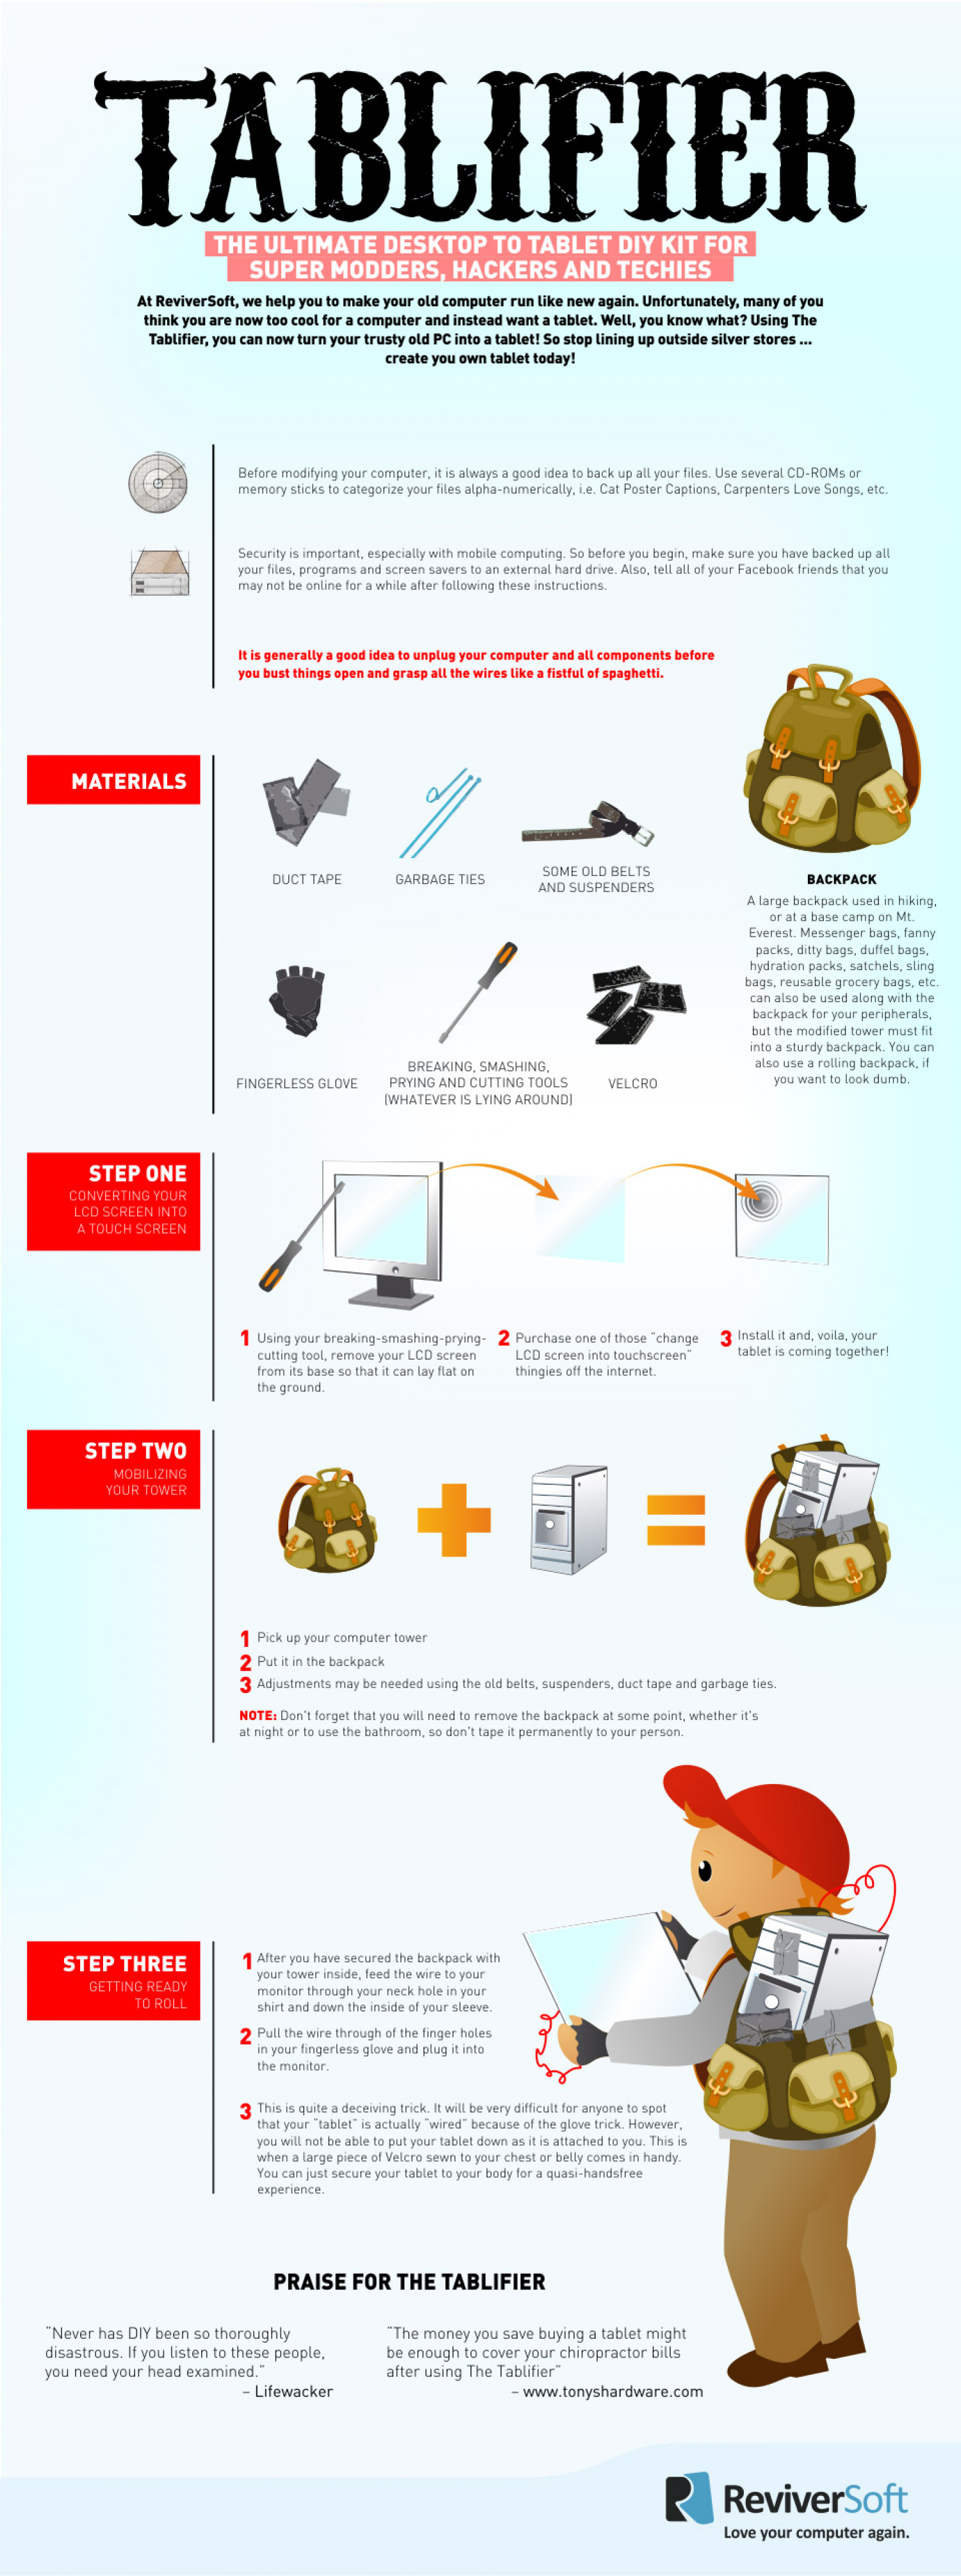 The Tablifier: Turn Your Old PC Into A Tablet Infographic